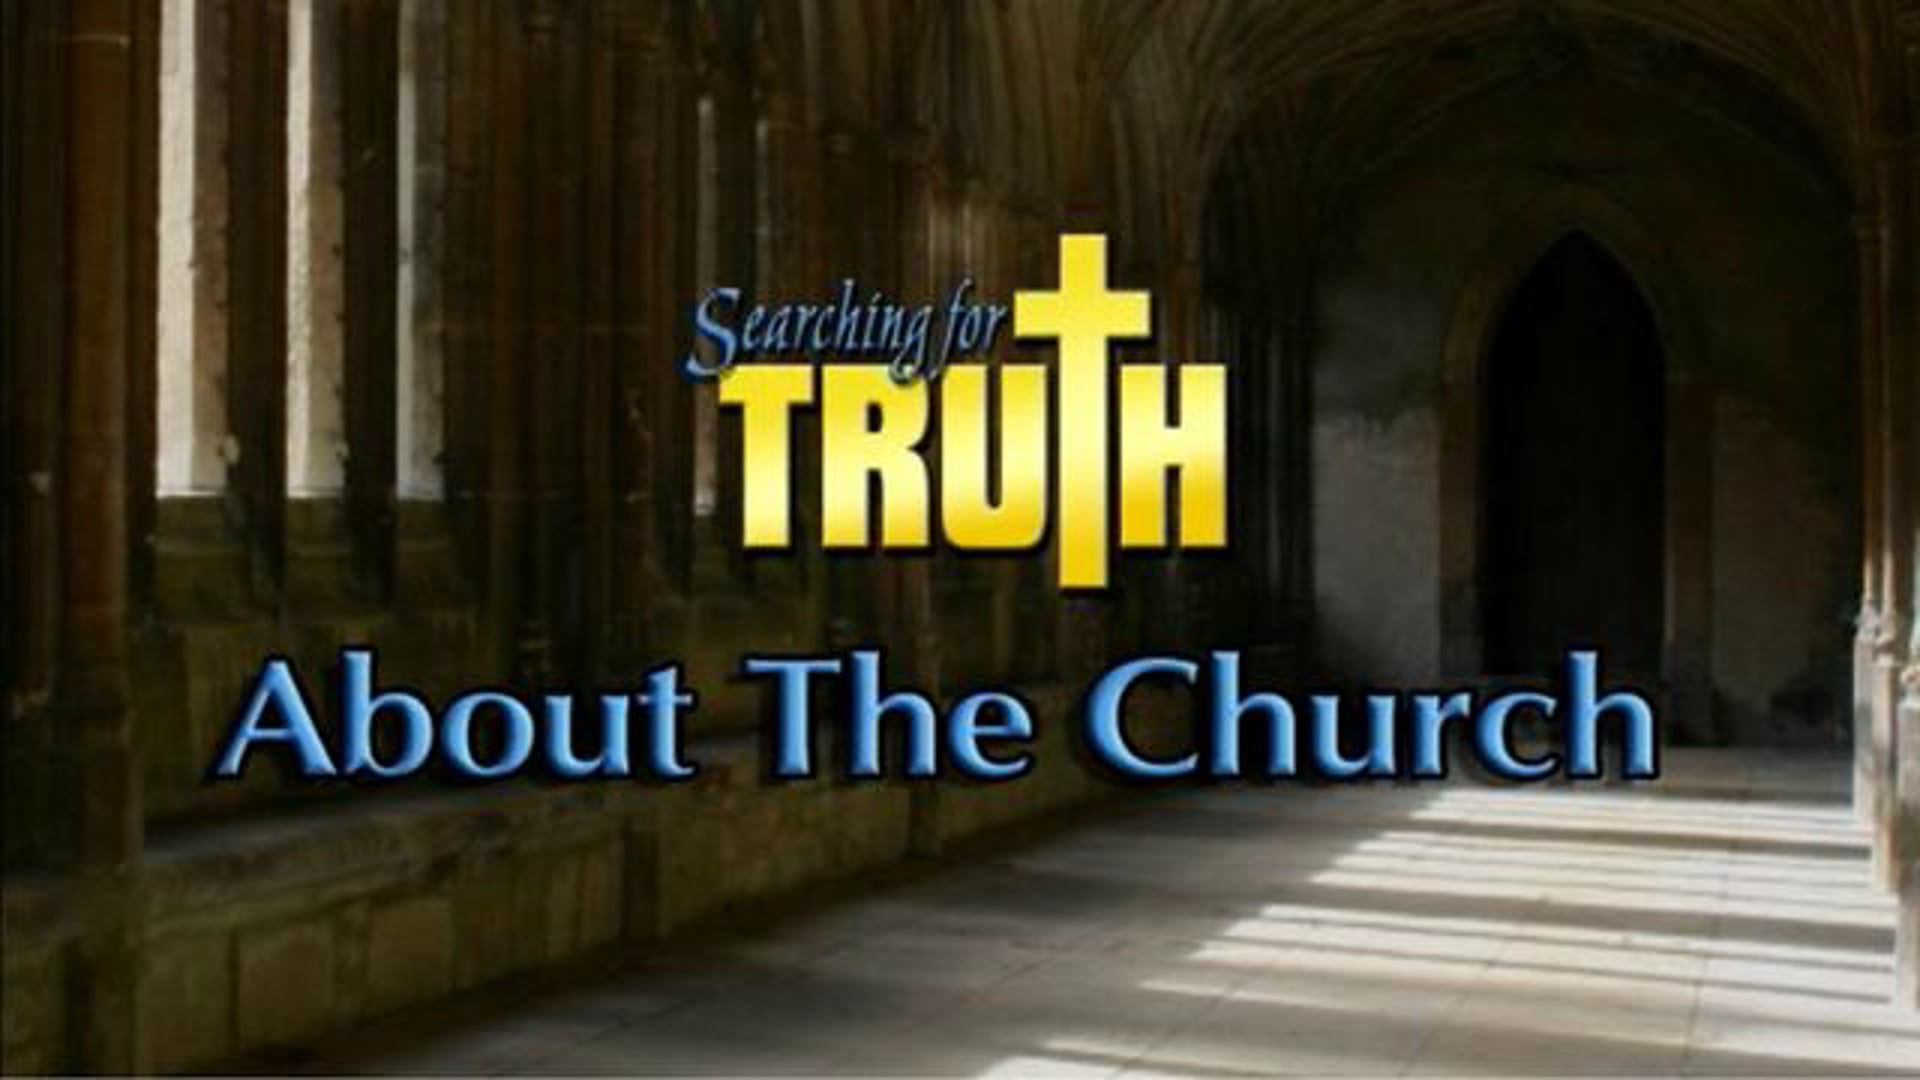 Searching for Truth About the Church